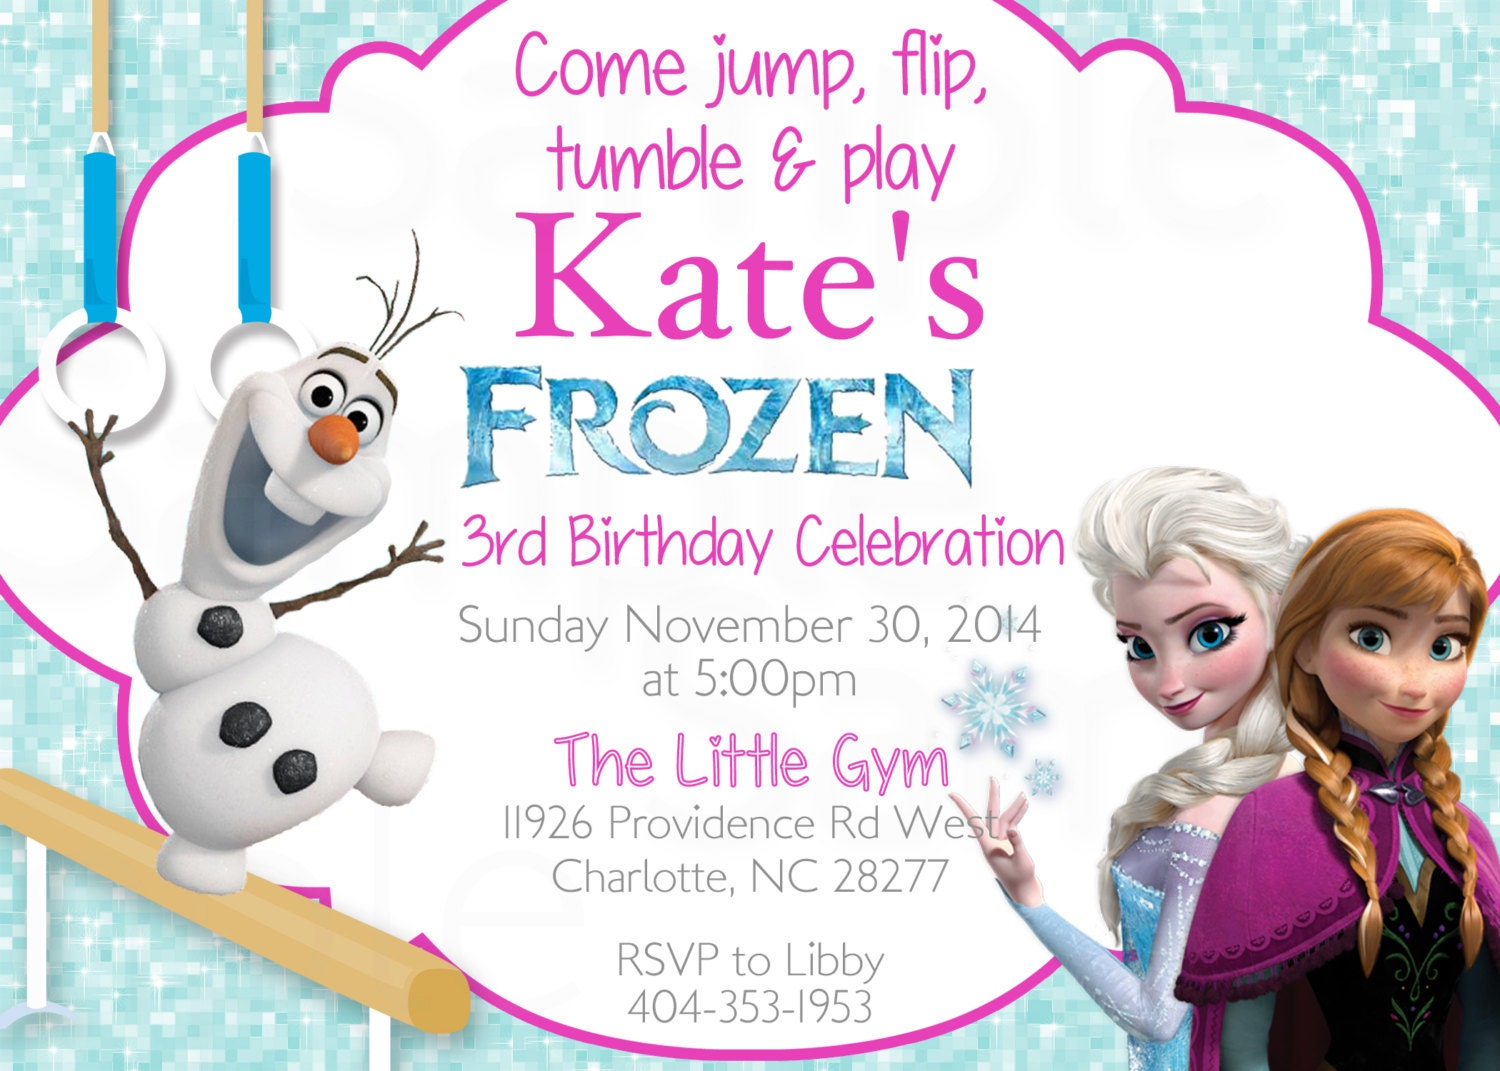 Frozen Olaf Queen Elsa Girls Gymnastics or Trampoline Birthday